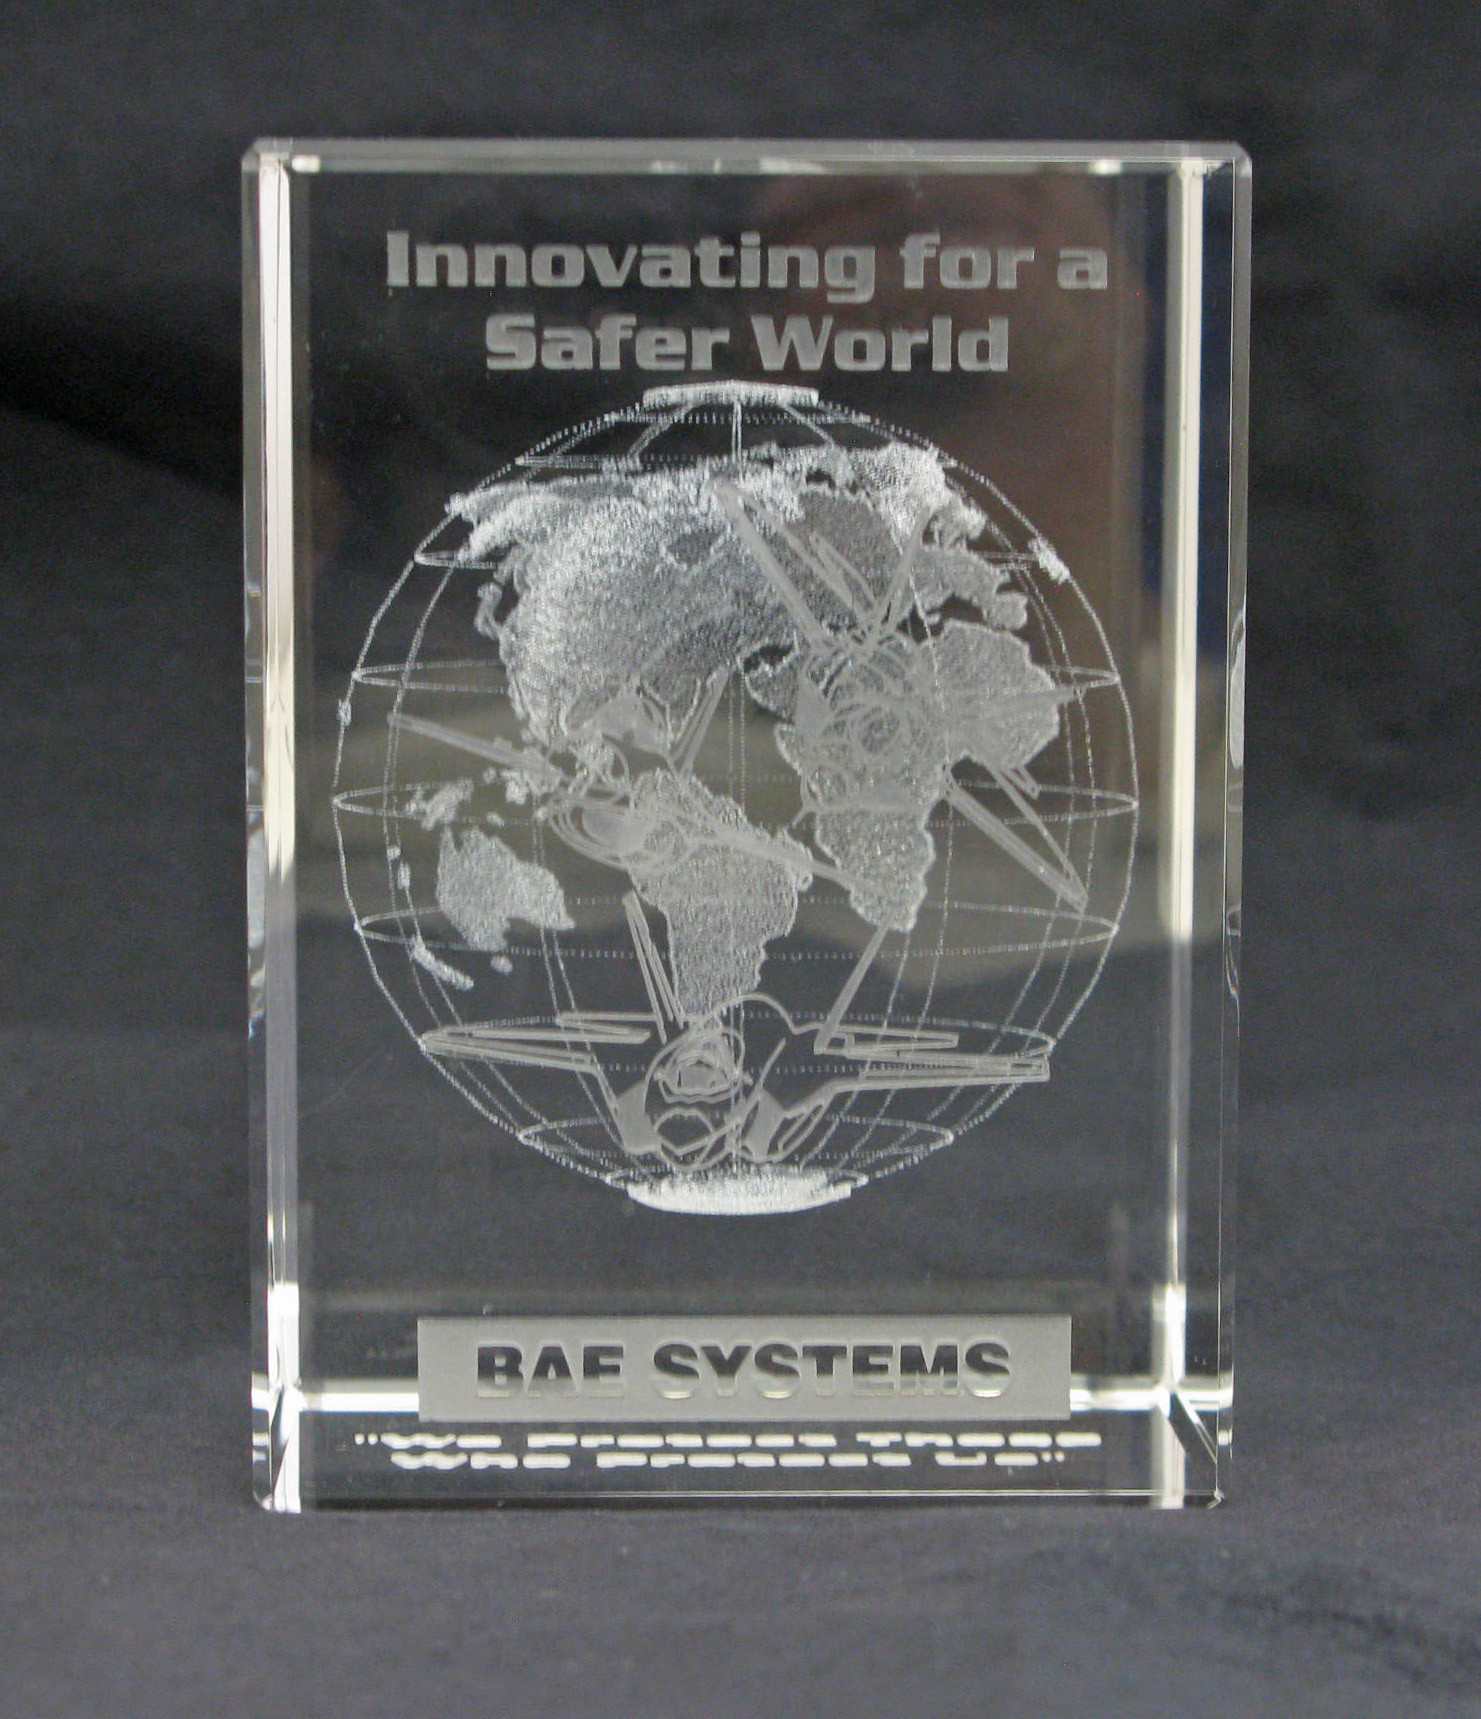 BAE Systems Promotional Item